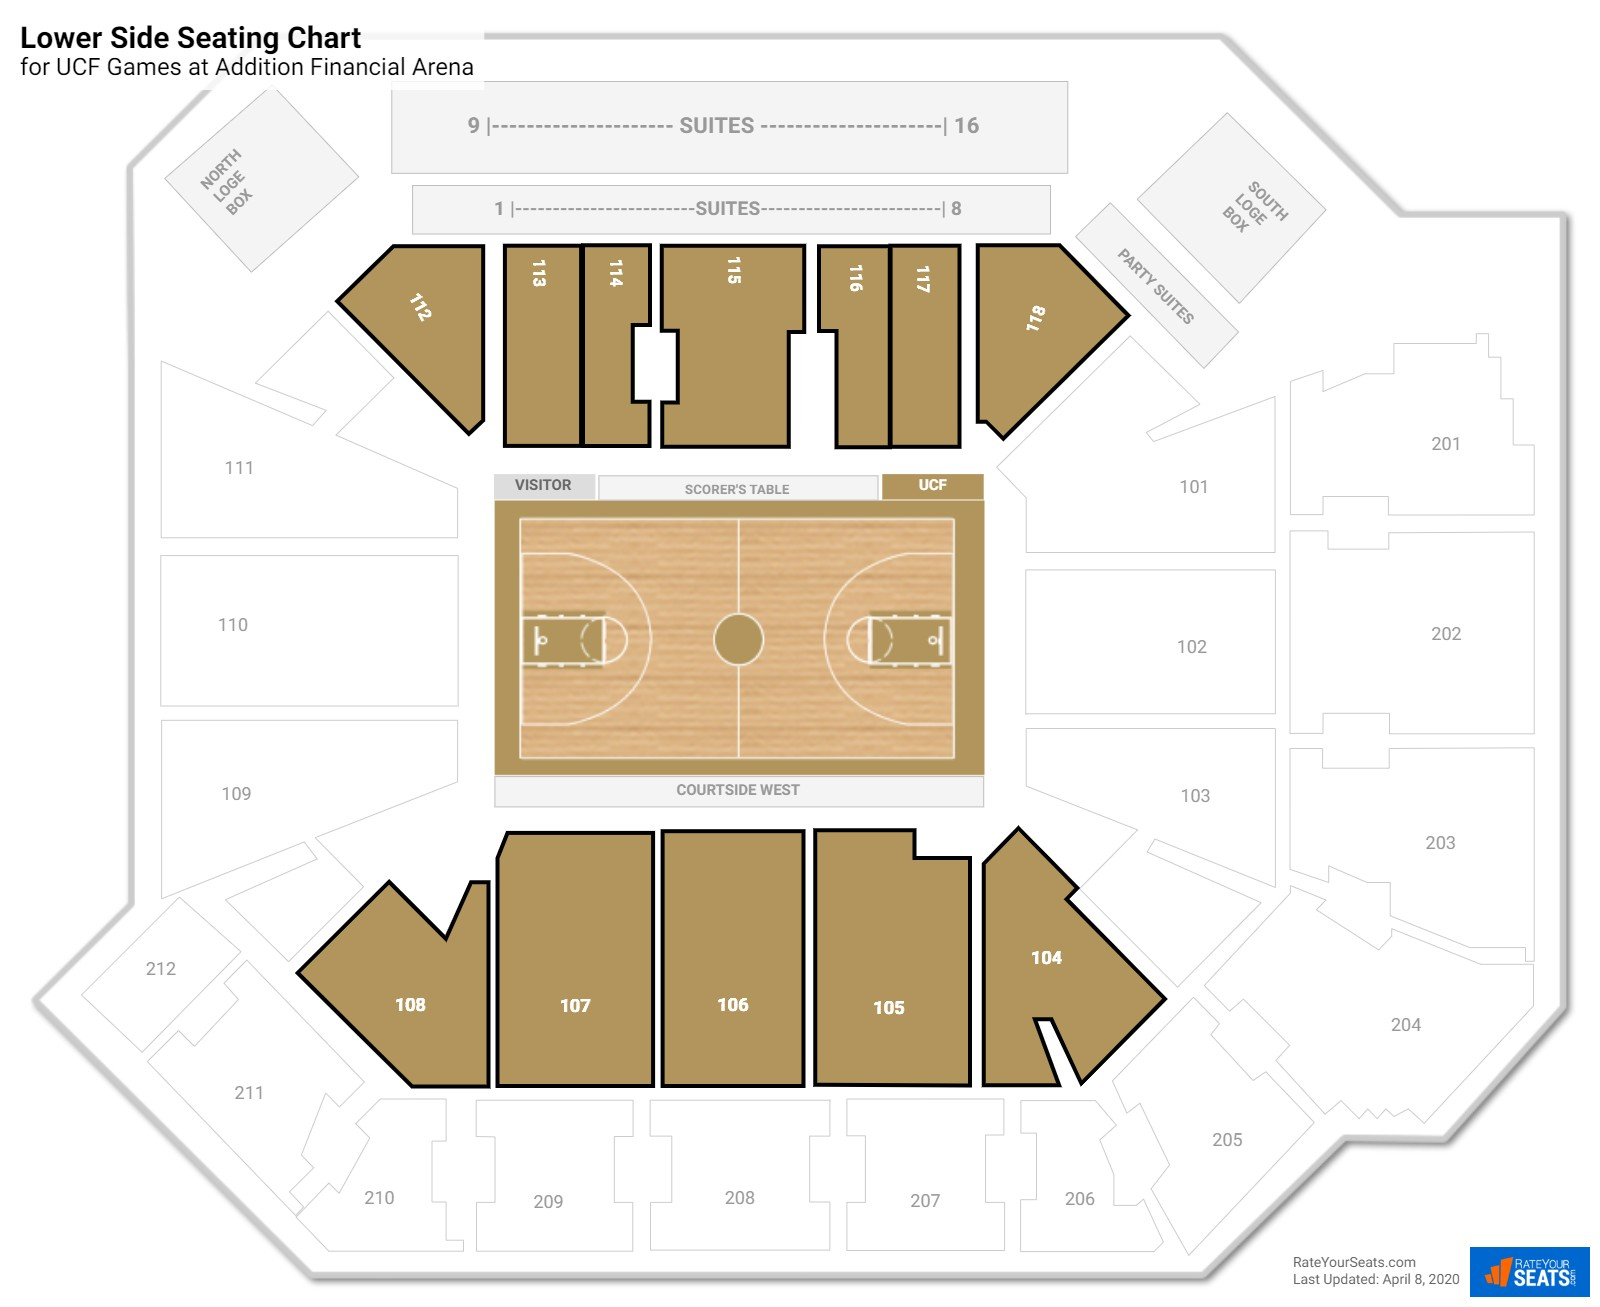 CFE Arena Lower Sideline seating chart